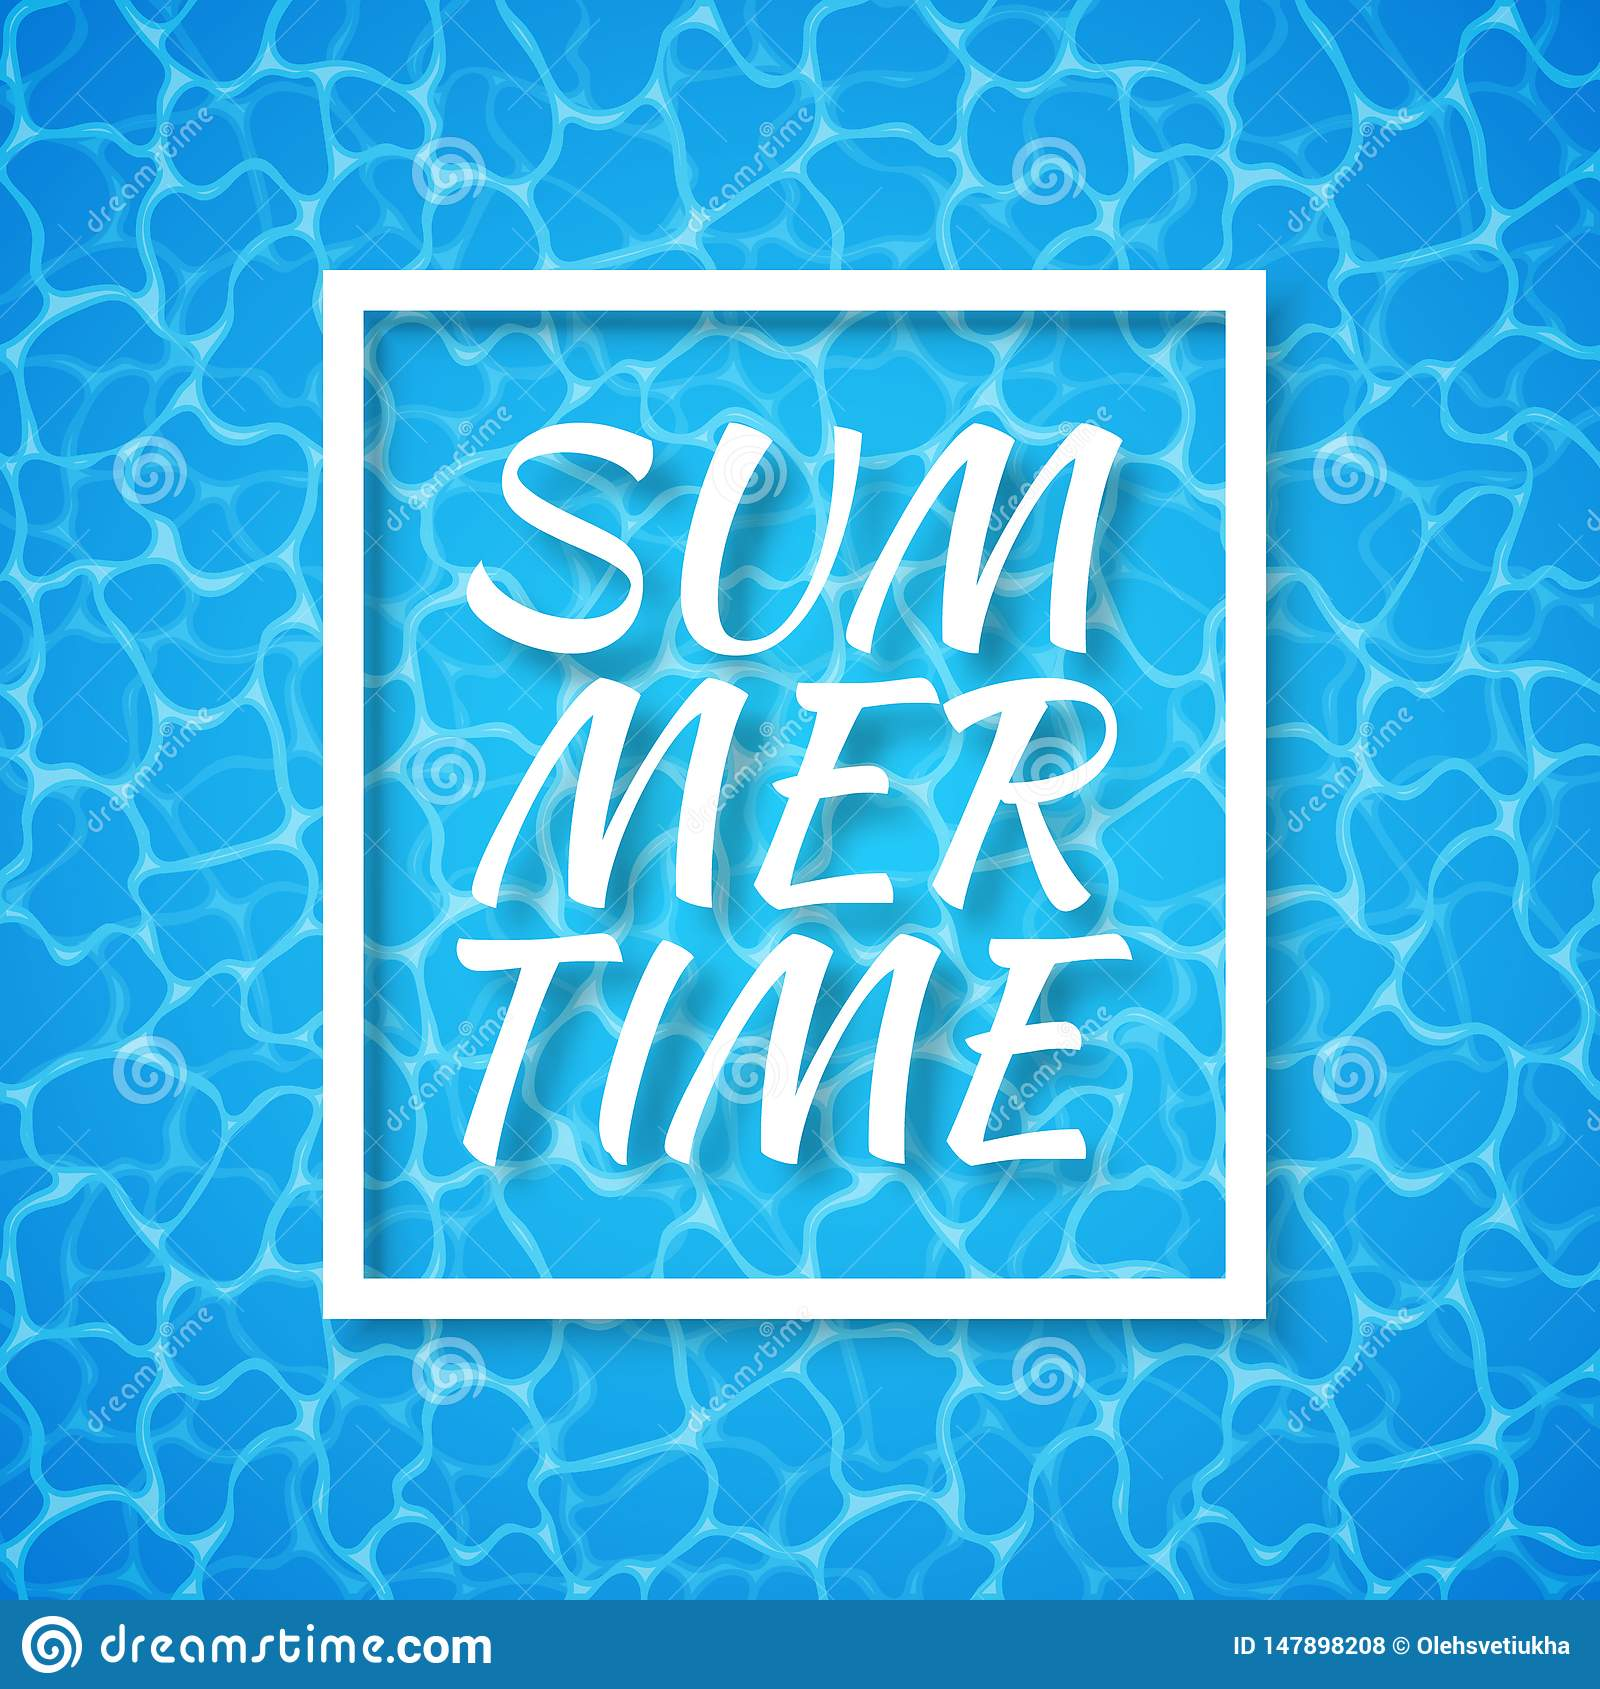 Summer time. Blue water background. Seamless blue ripples pattern. Water pool texture bottom background. Vector illustration